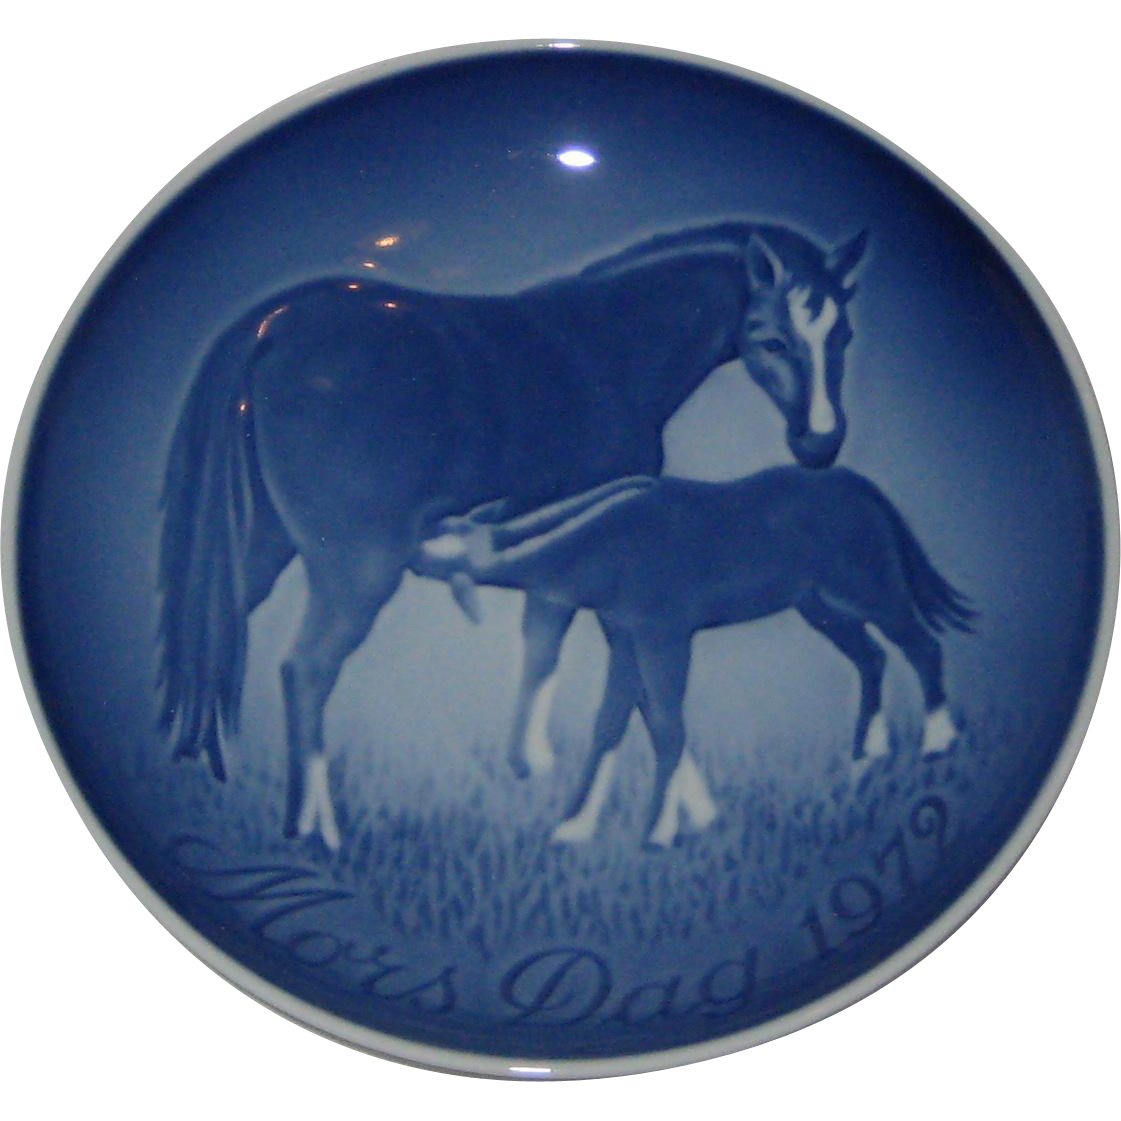 Bing and Grondahl Copenhagen Porcelain 1979 Mother's Day Plate - Mare and Foal - Horses - Original Box